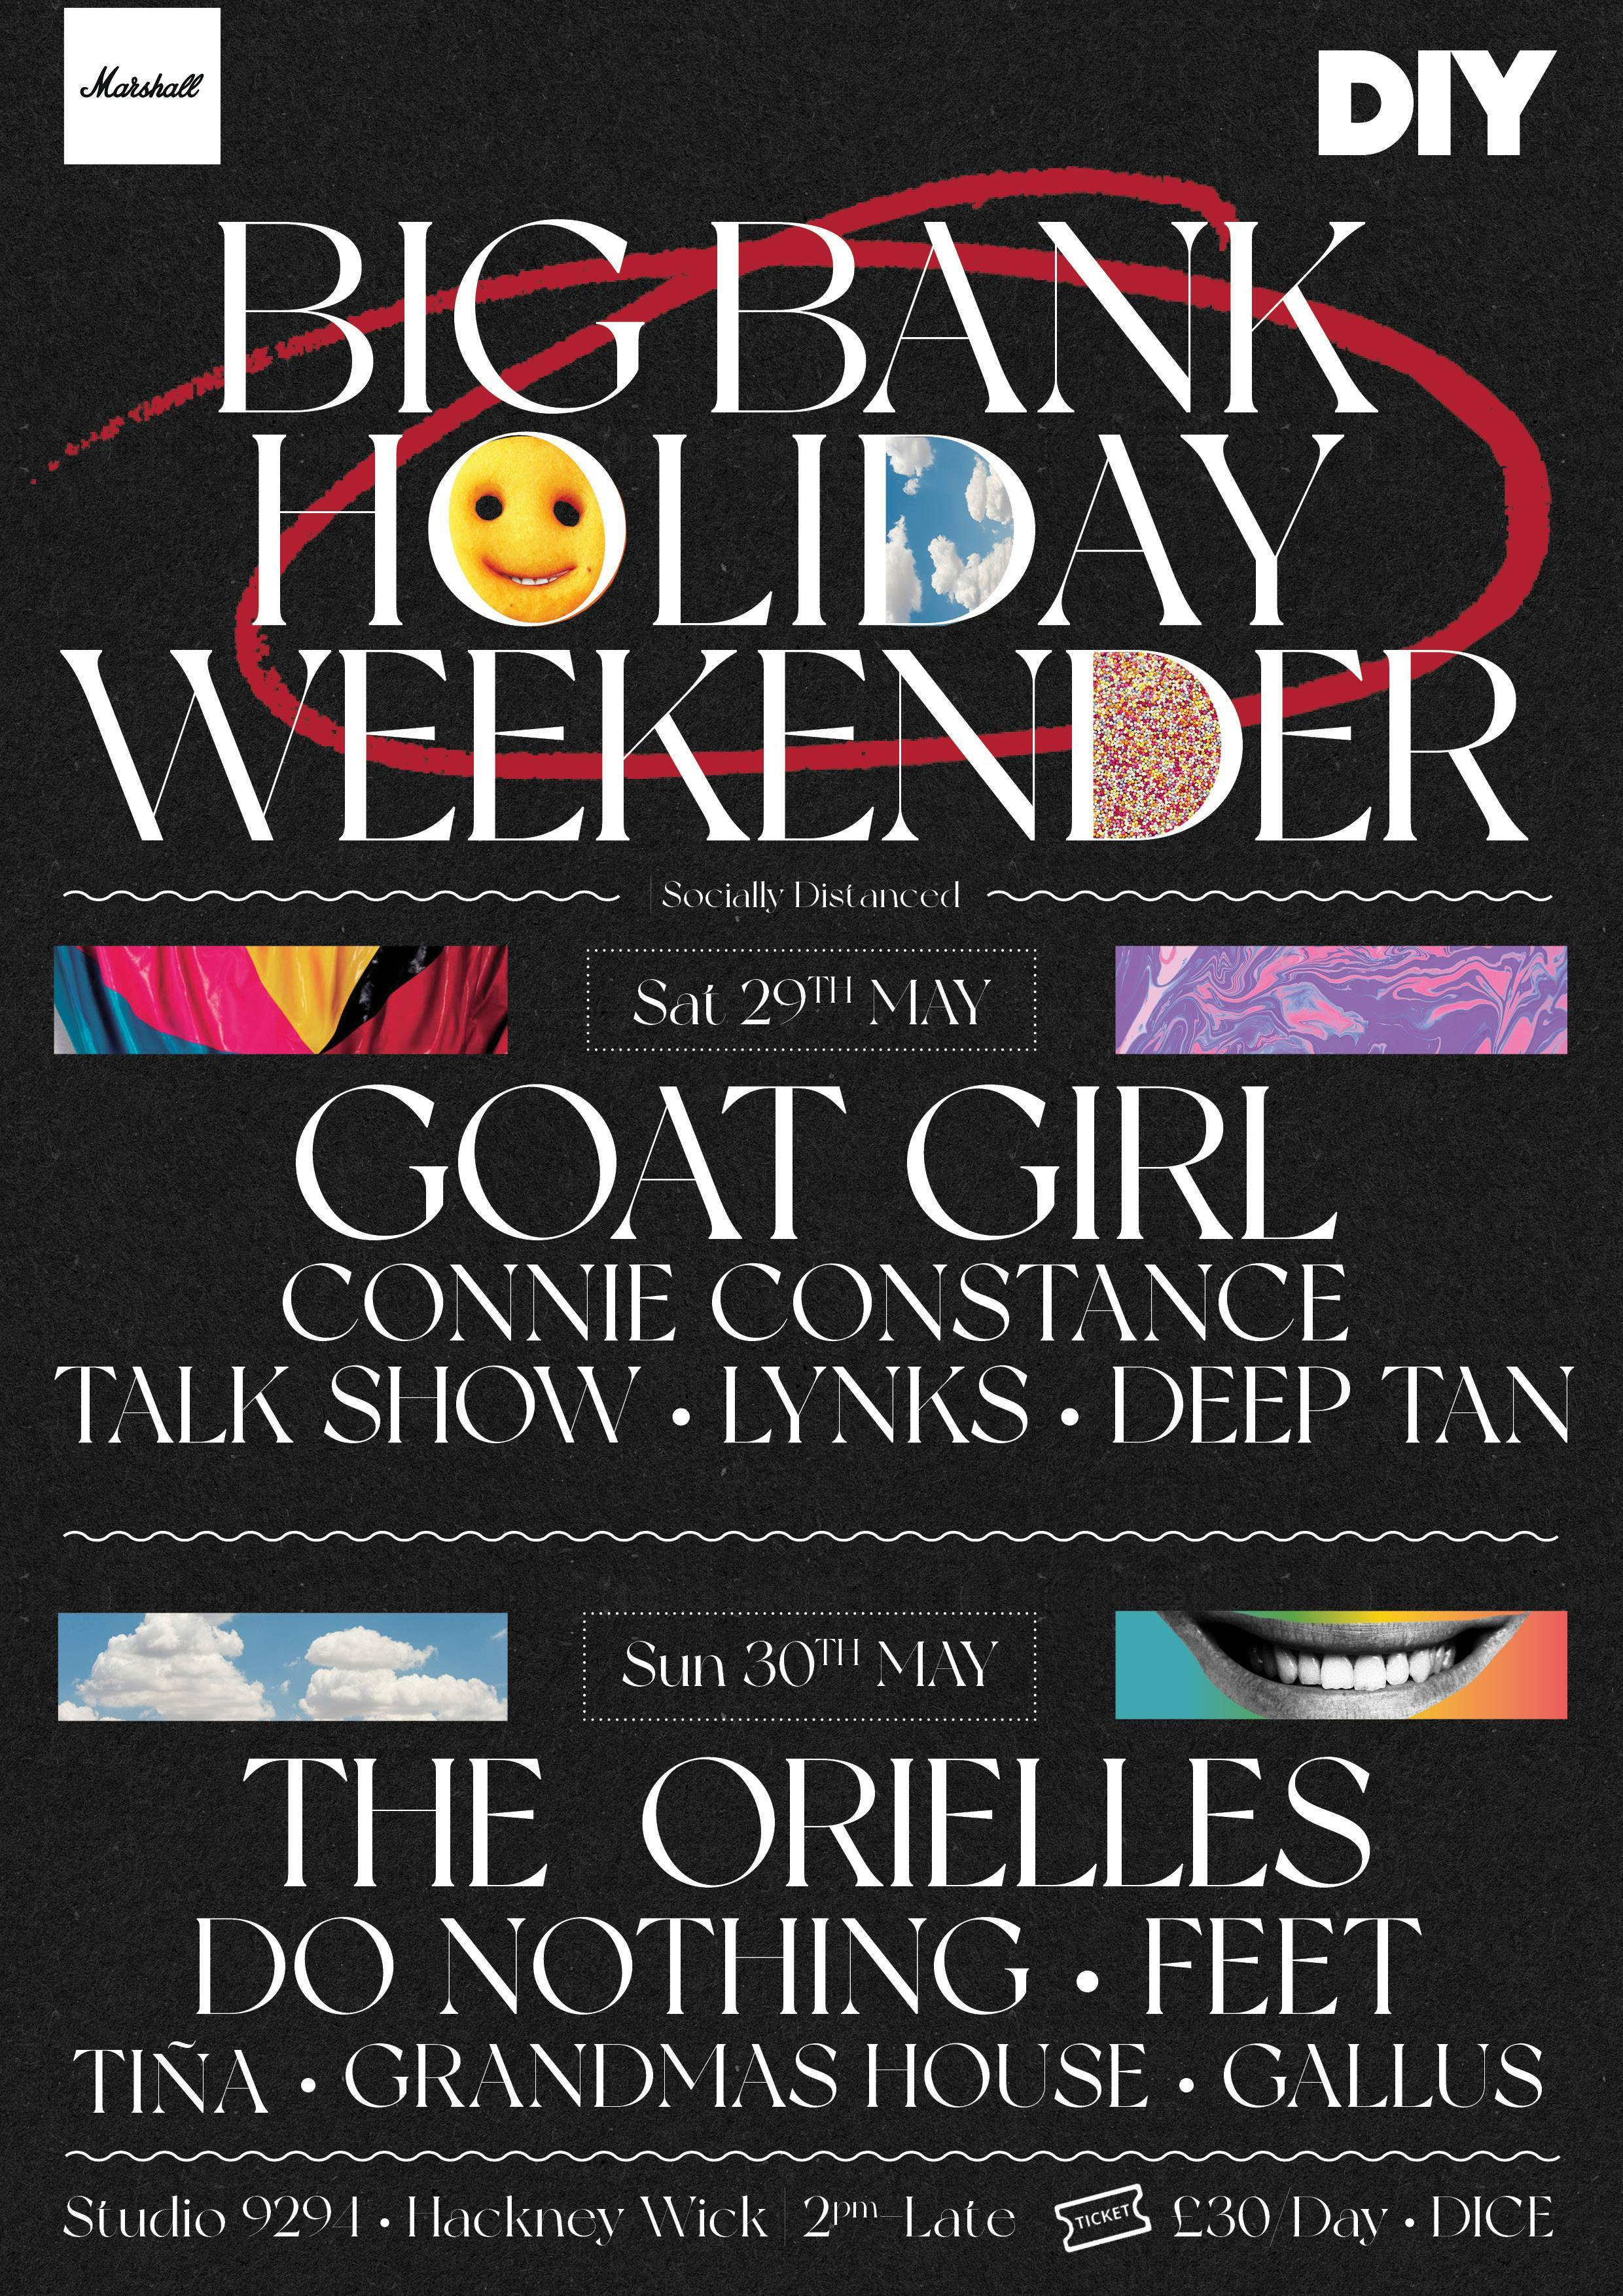 Goat Girl, The Orielles, Do Nothing, Connie Constance & more to play DIY's Big Bank Holiday Weekender